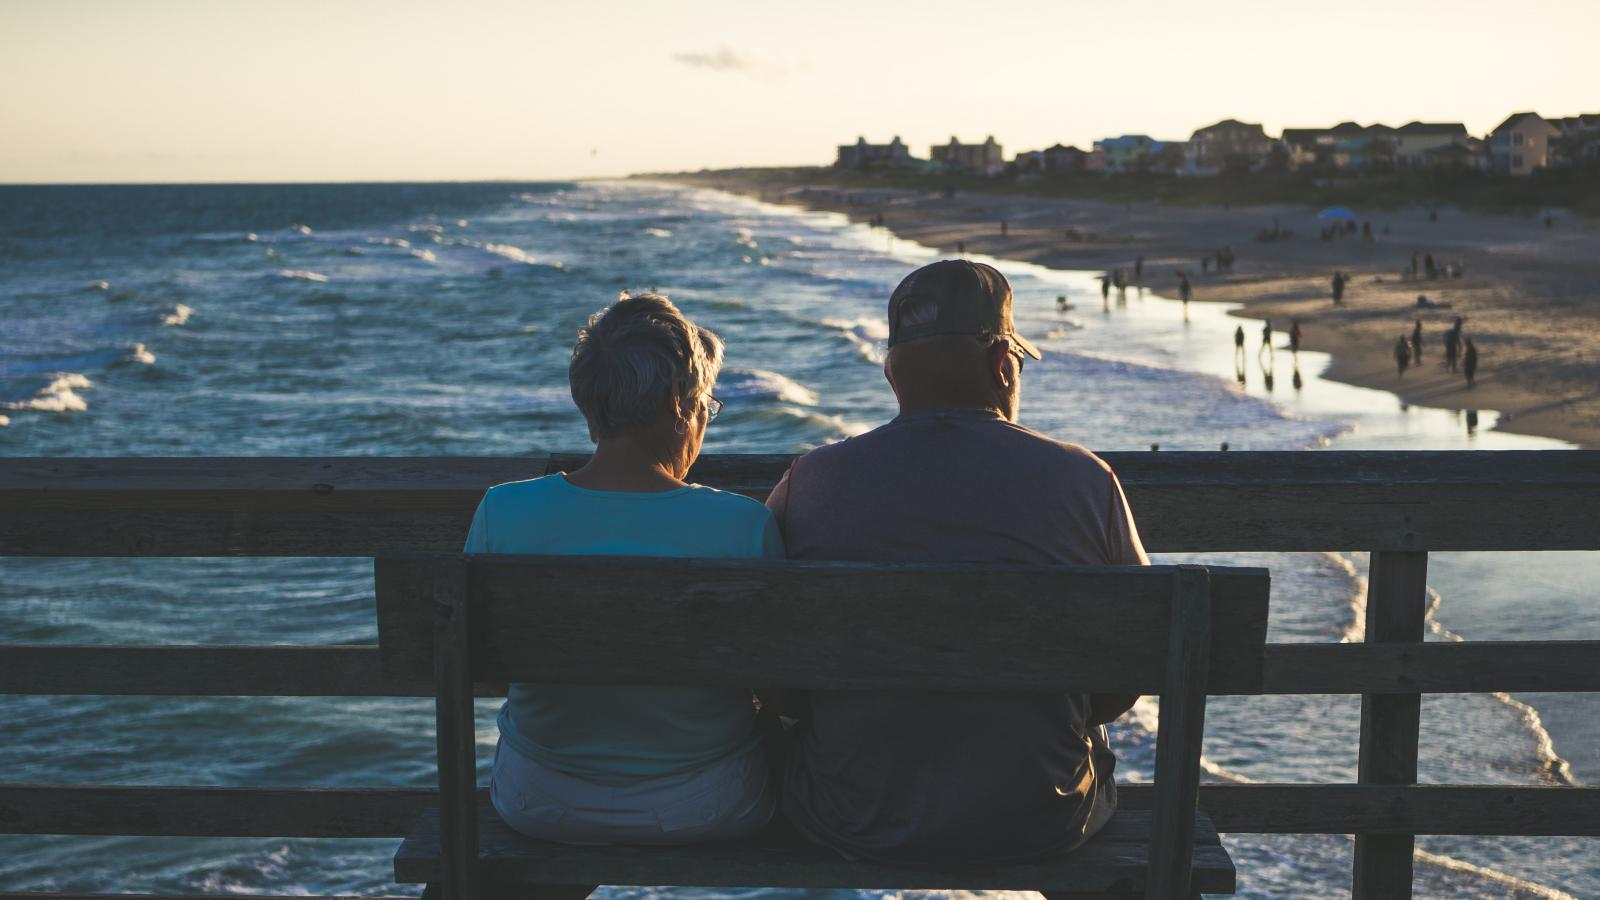 A couple sit with their backs to the camera on a bench overlooking a beach